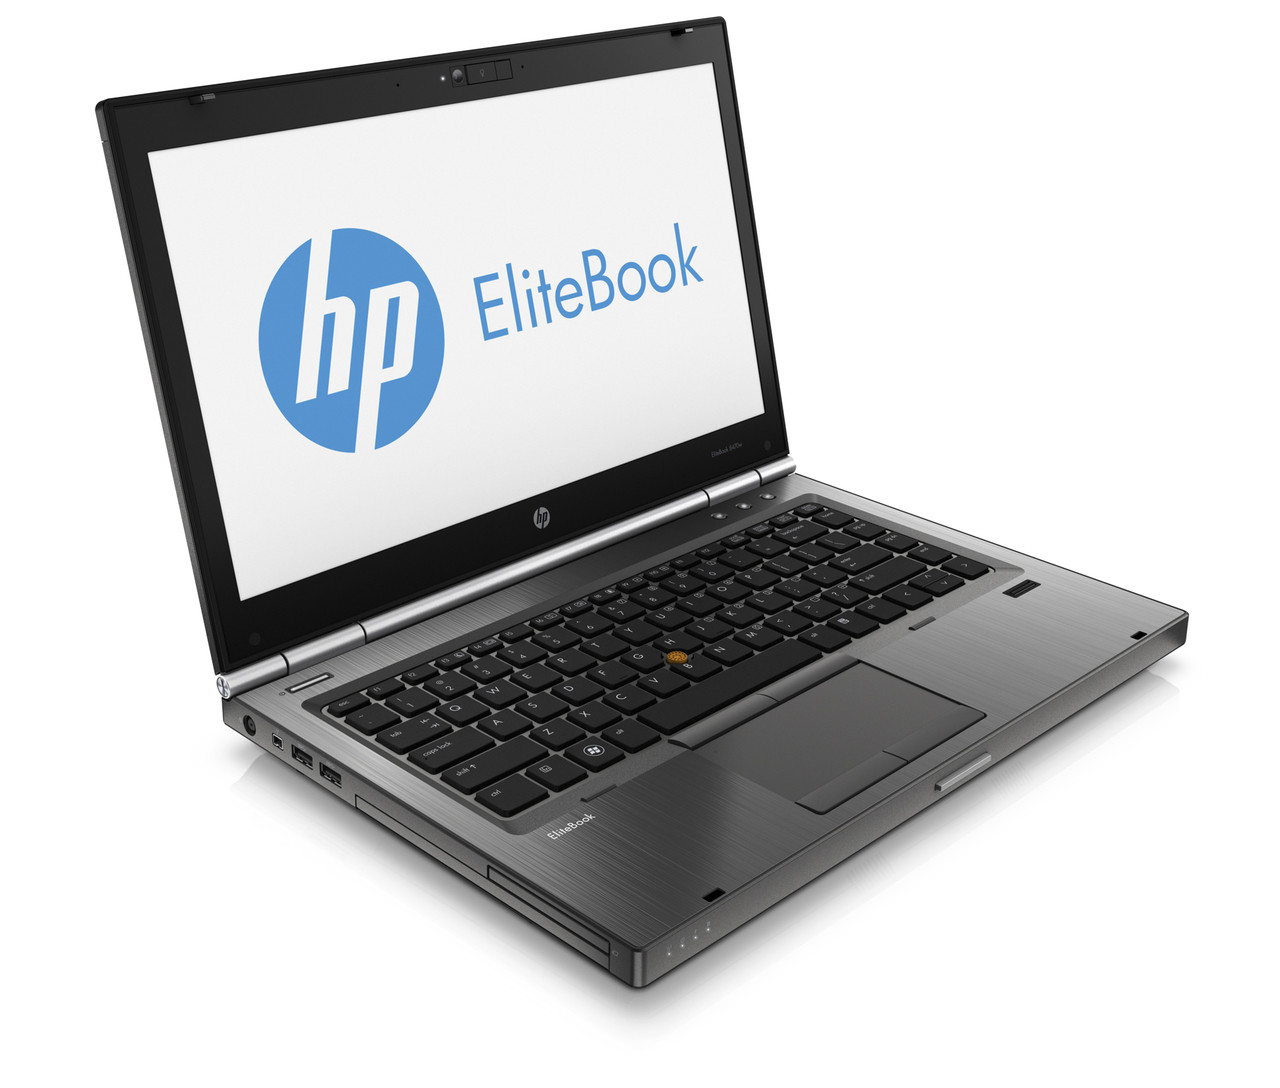 Hp Elitebook 8740w Side View